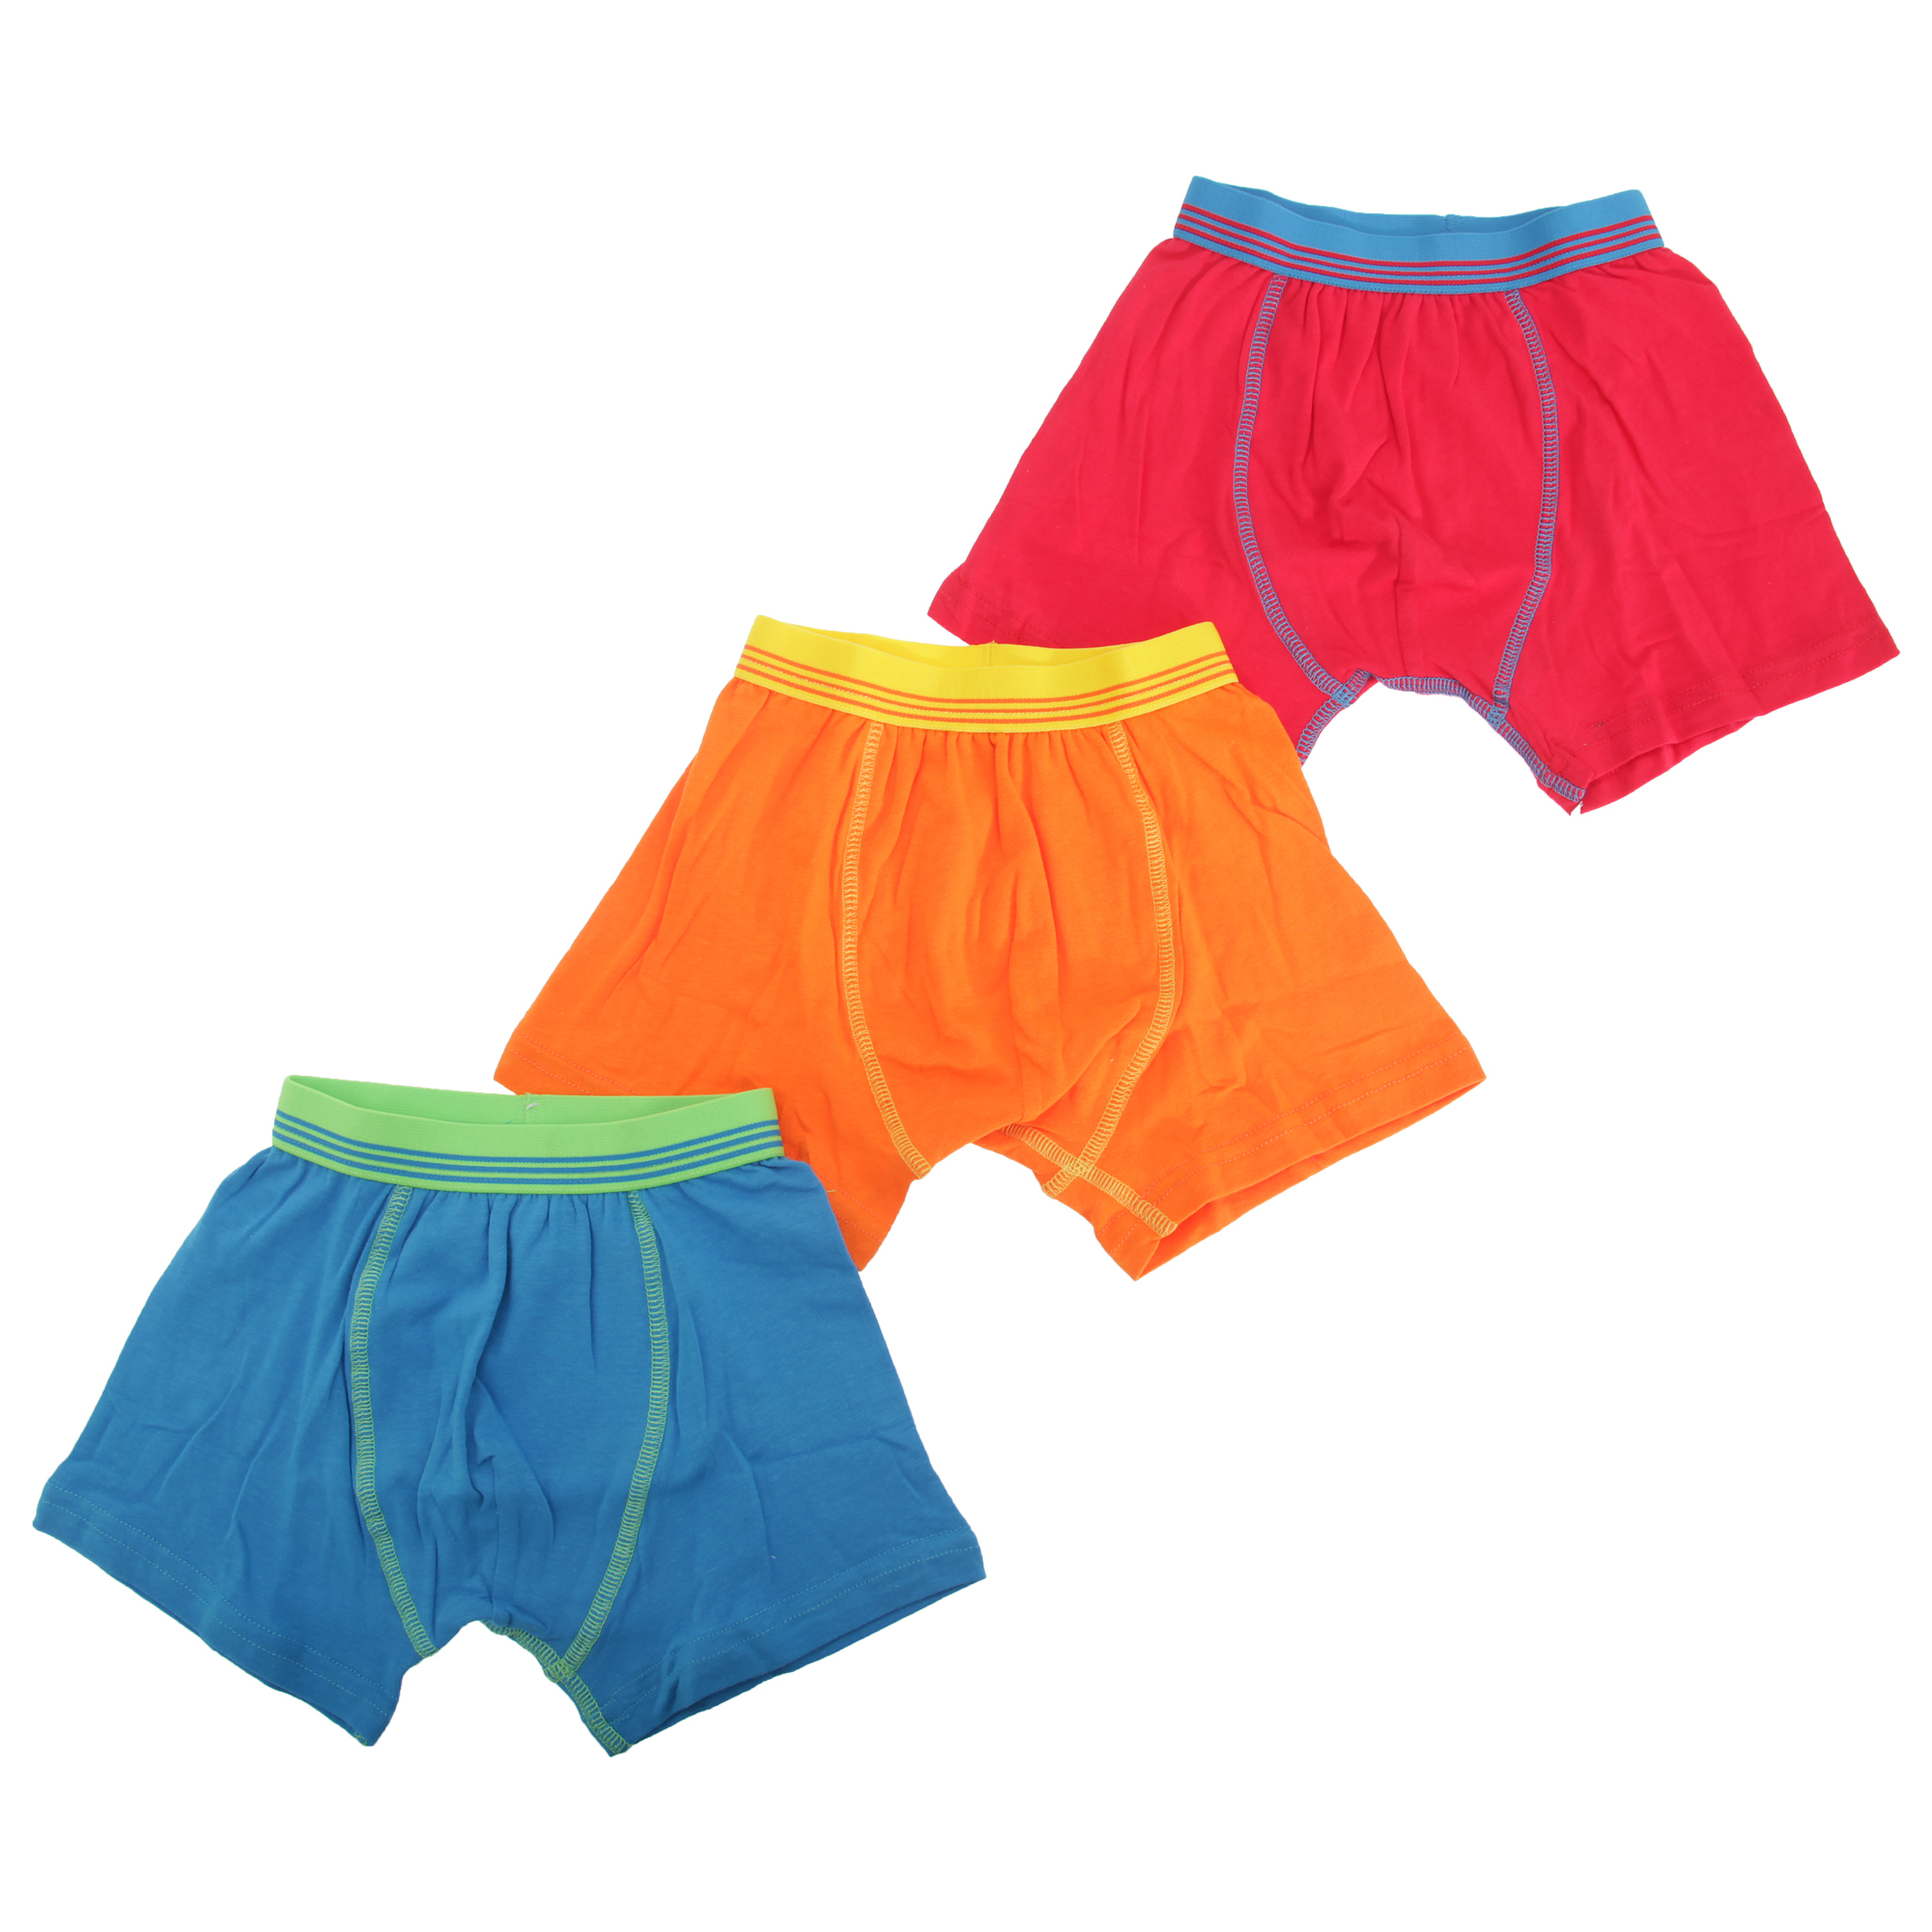 Pack Of 3 Childrens Boys Contrast Band Design Trunks//Boxer Shorts Underwear